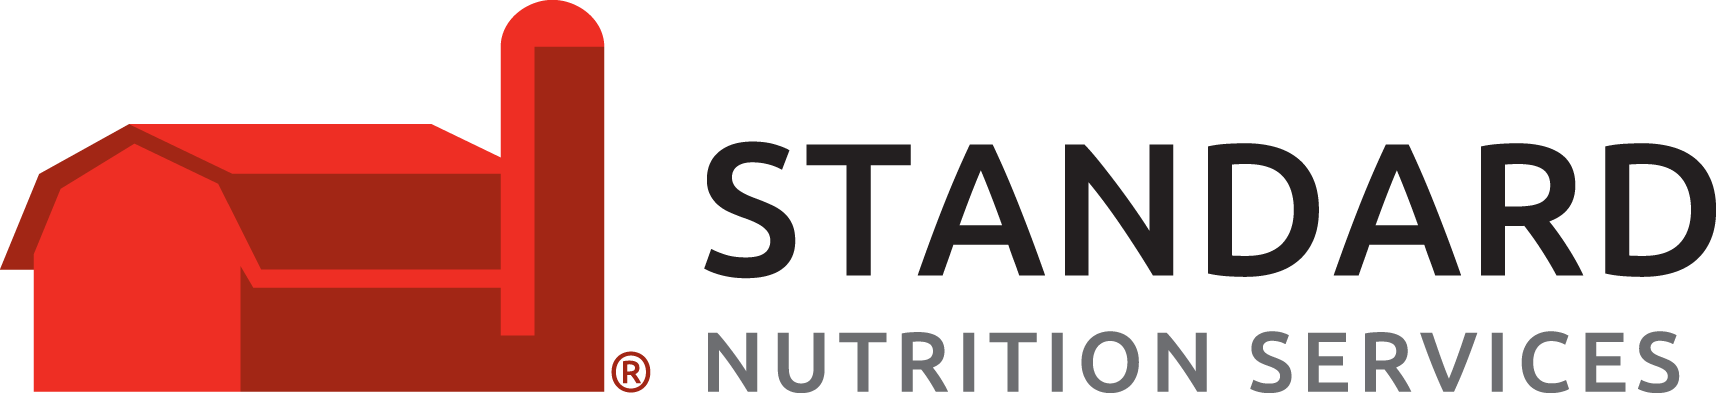 Standard Nutrition Services